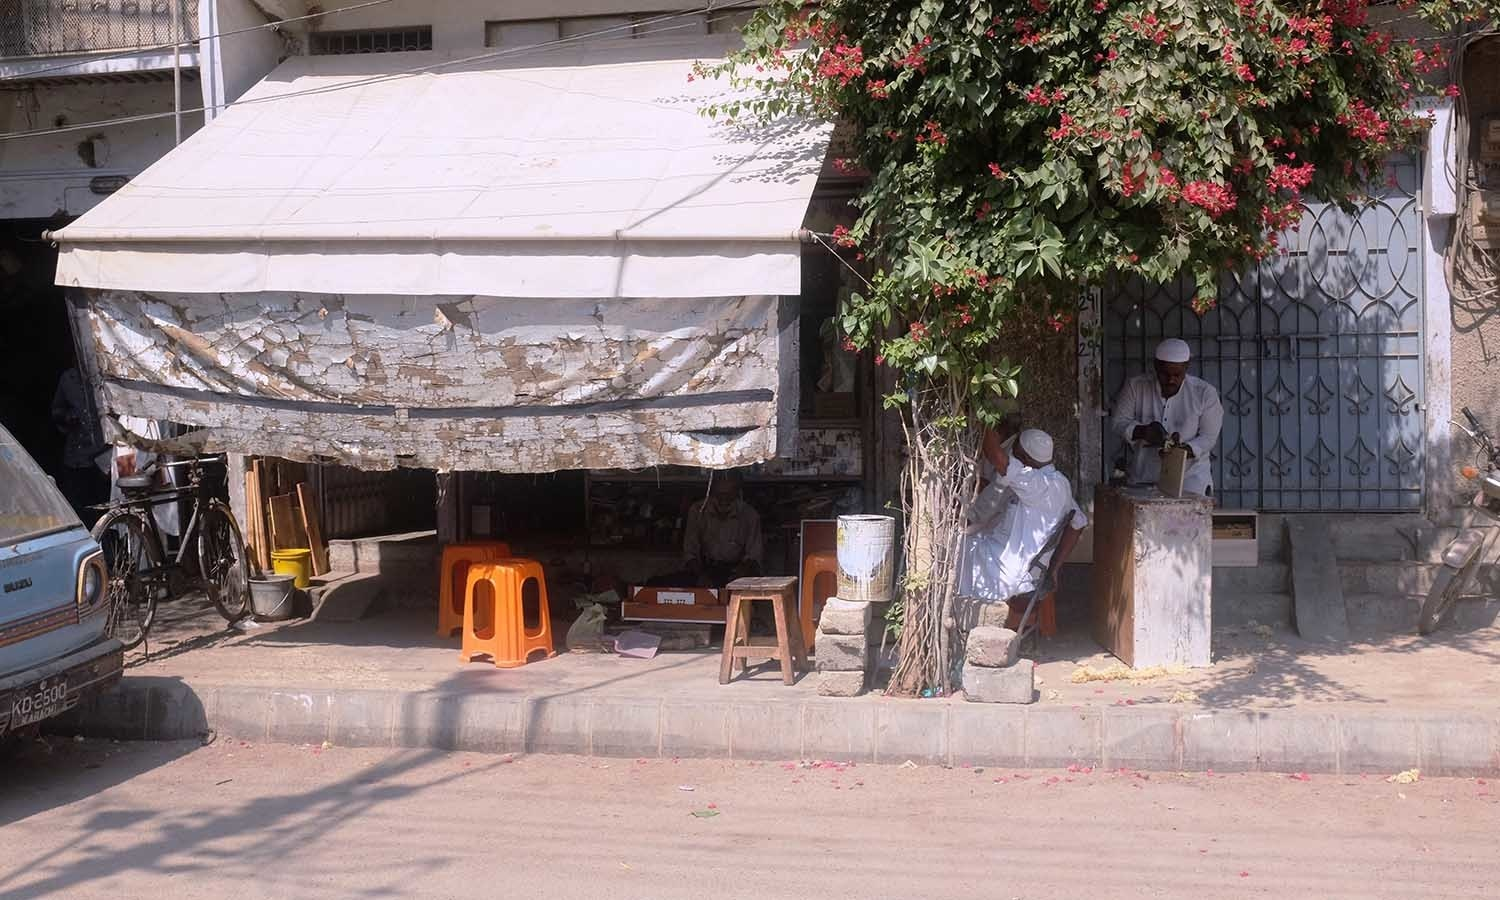 Waheed's music shop is tucked between a house and welding shop.